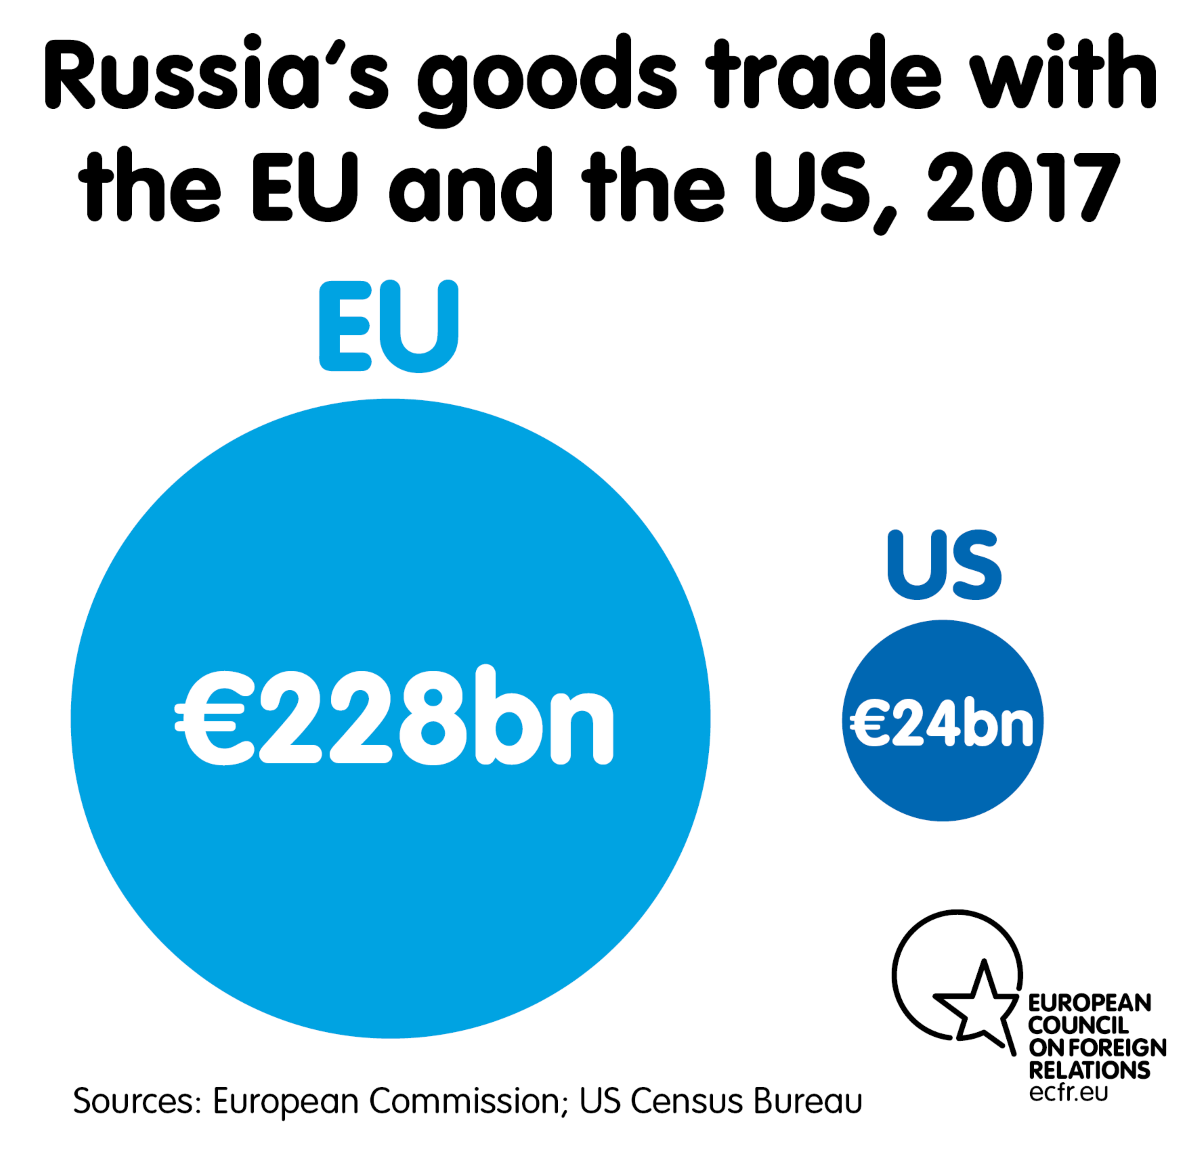 Russia's goods trade with the EU and the US, 2017